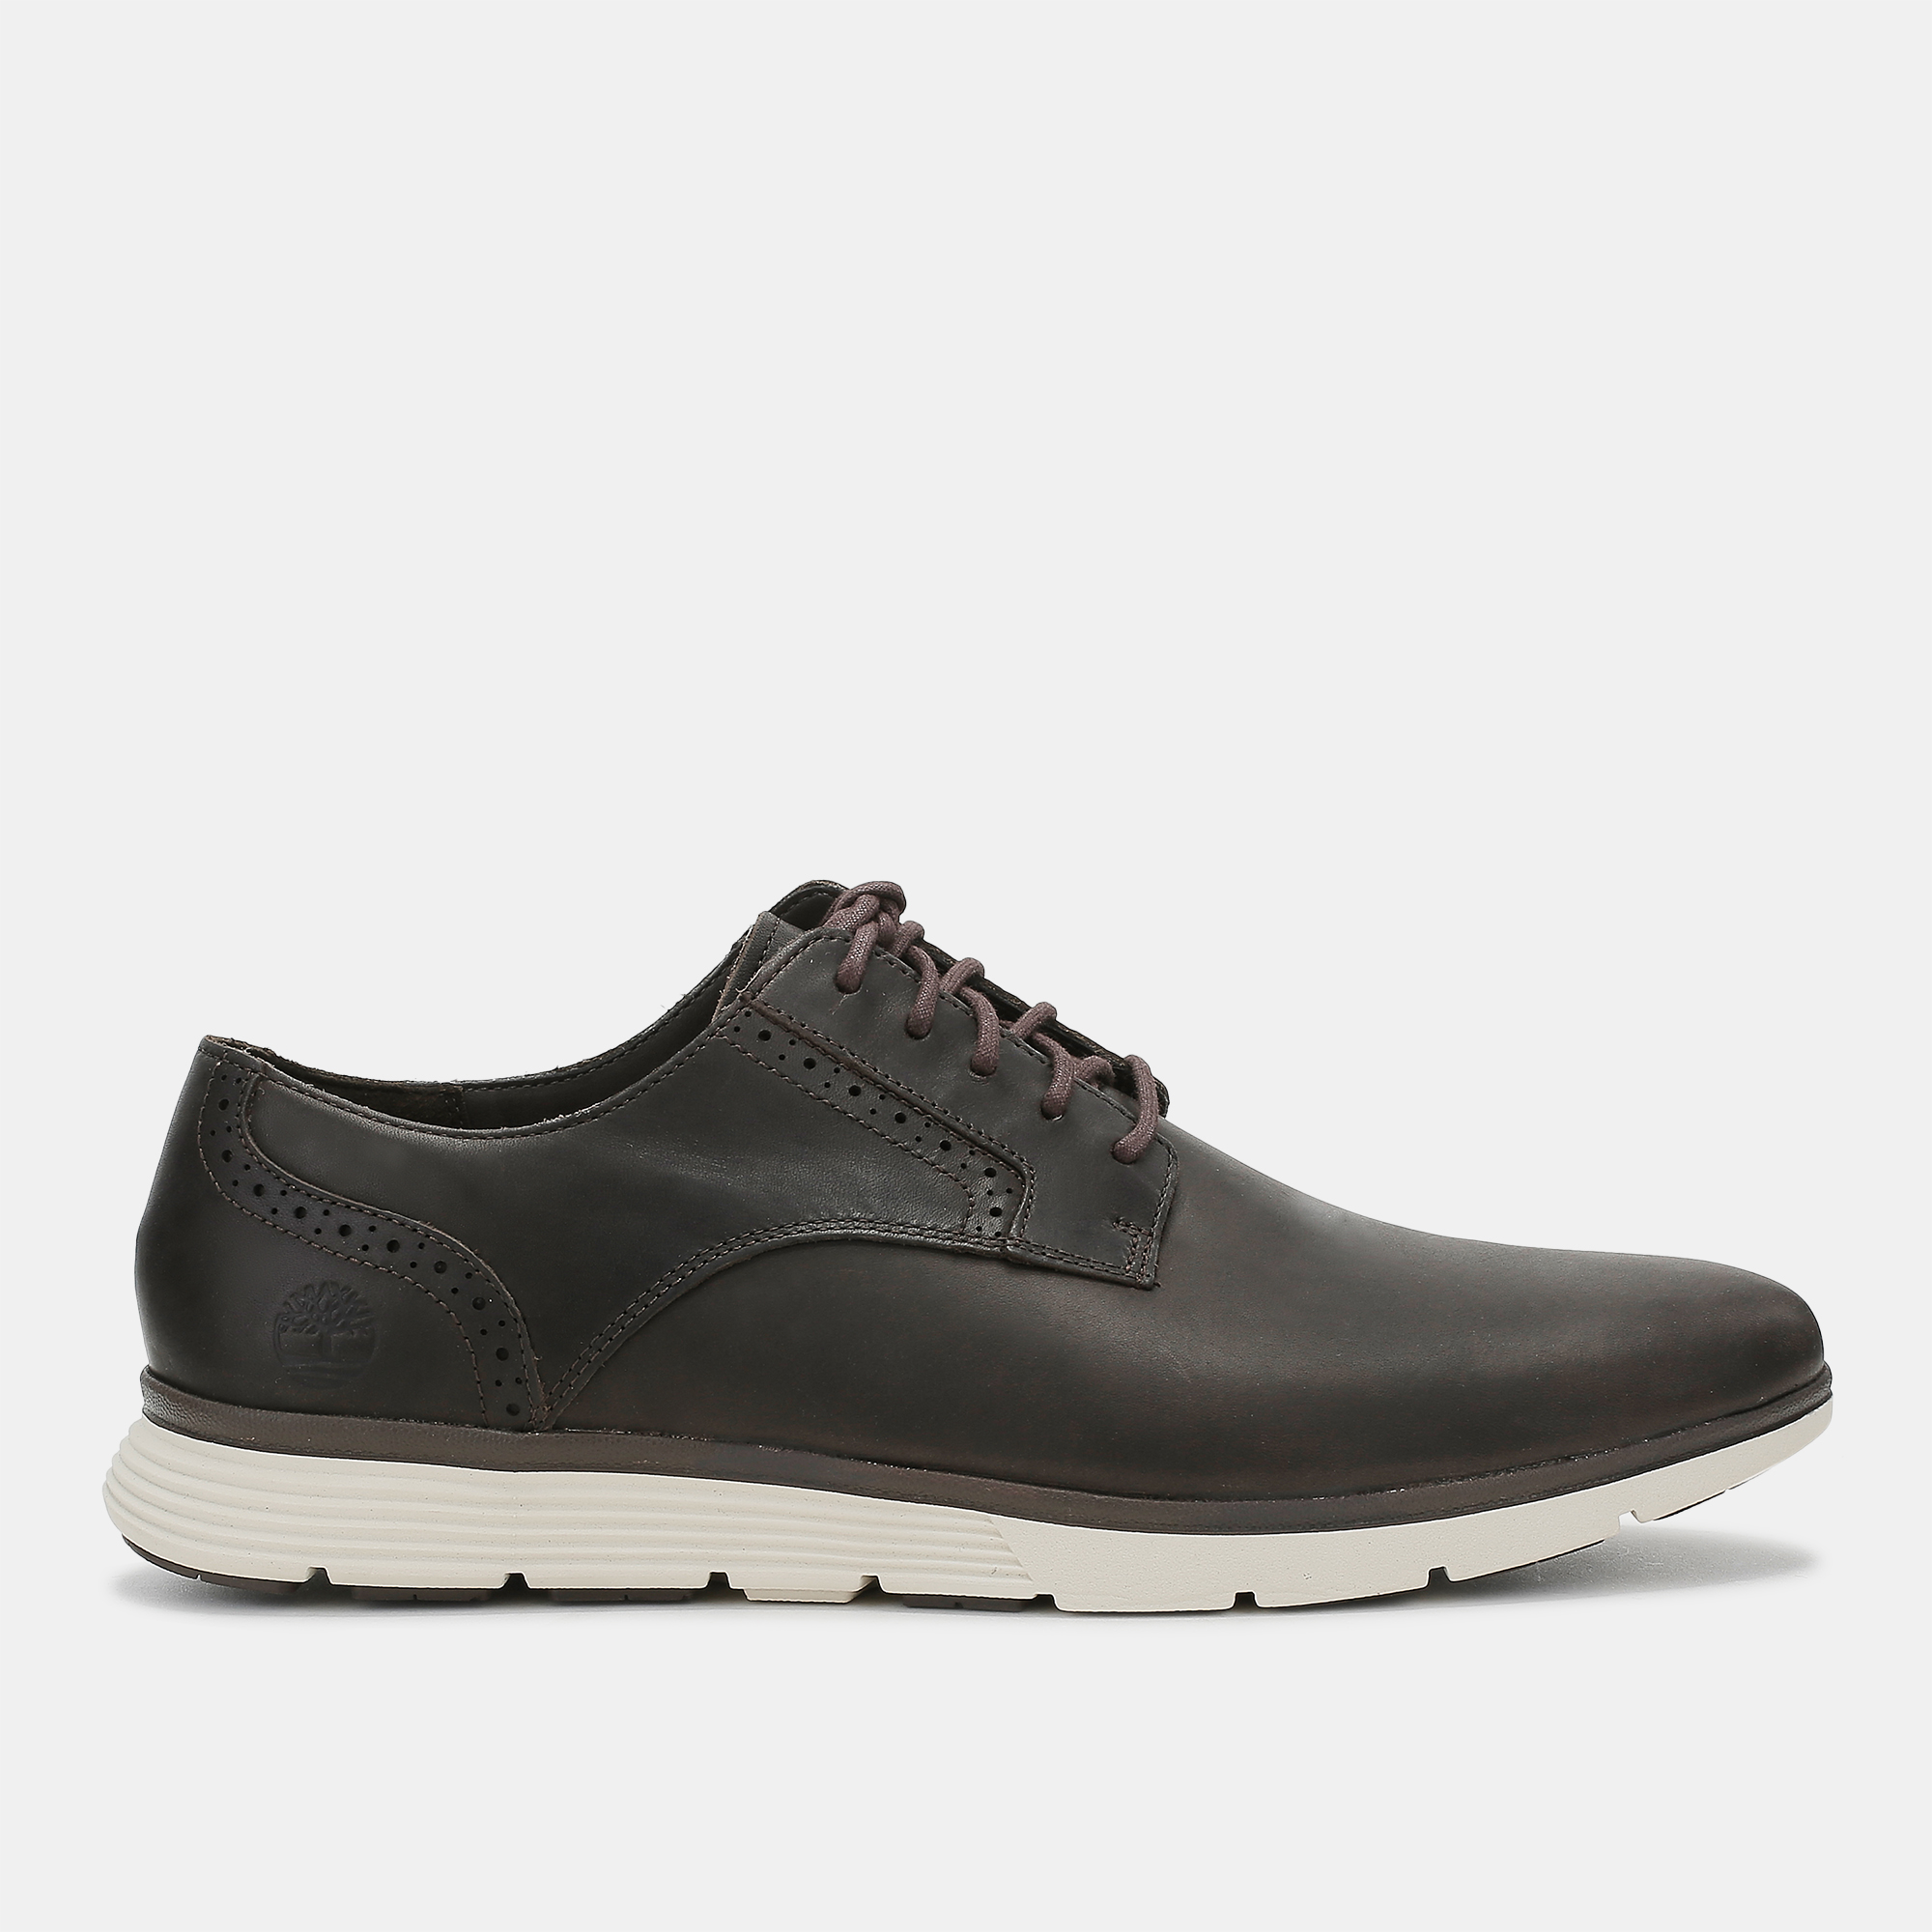 Timberland Franklin Park Brogue Oxford Shoes | Casual Shoes